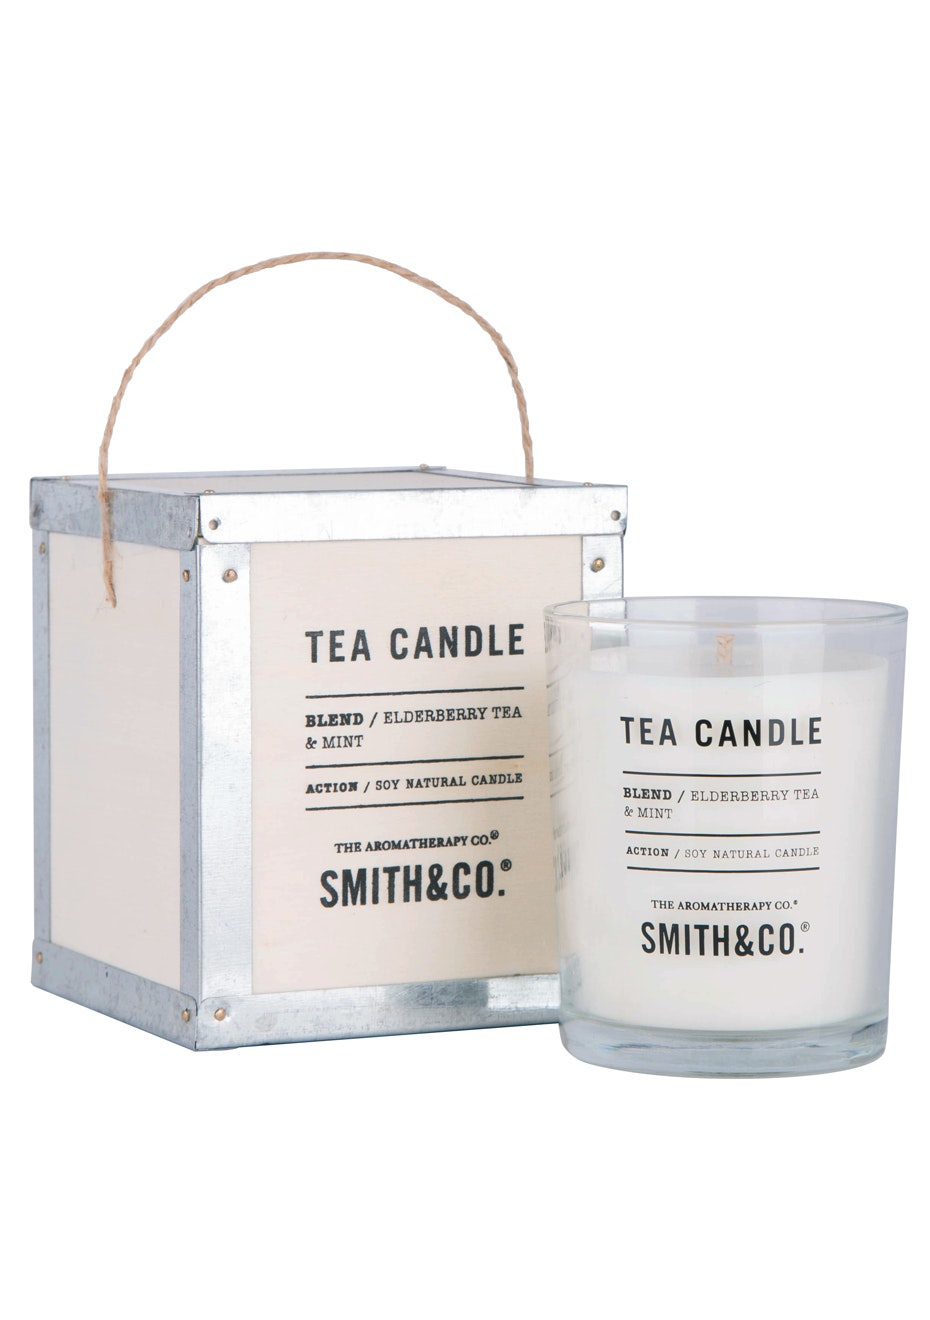 The Aromatherapy Co. Tea Chest Candle  - Elderberry Tea & Mint